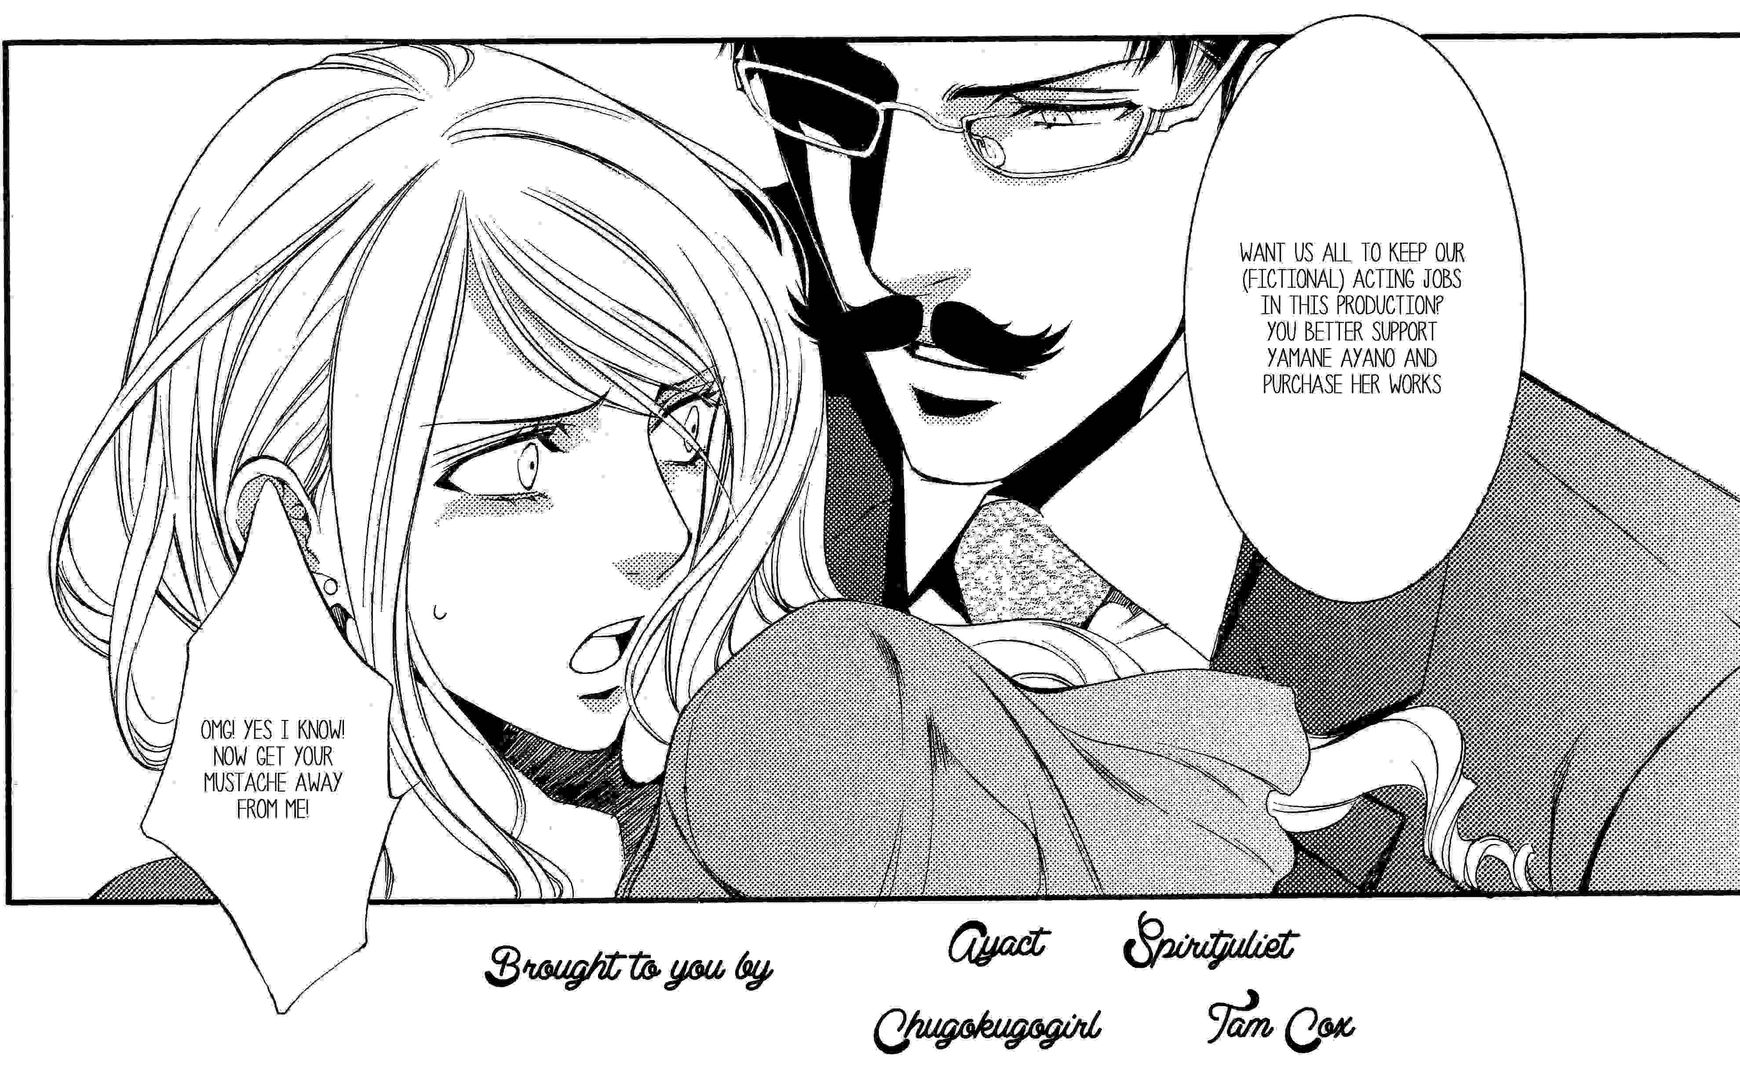 You're my loveprize in Viewfinder 46 Page 1